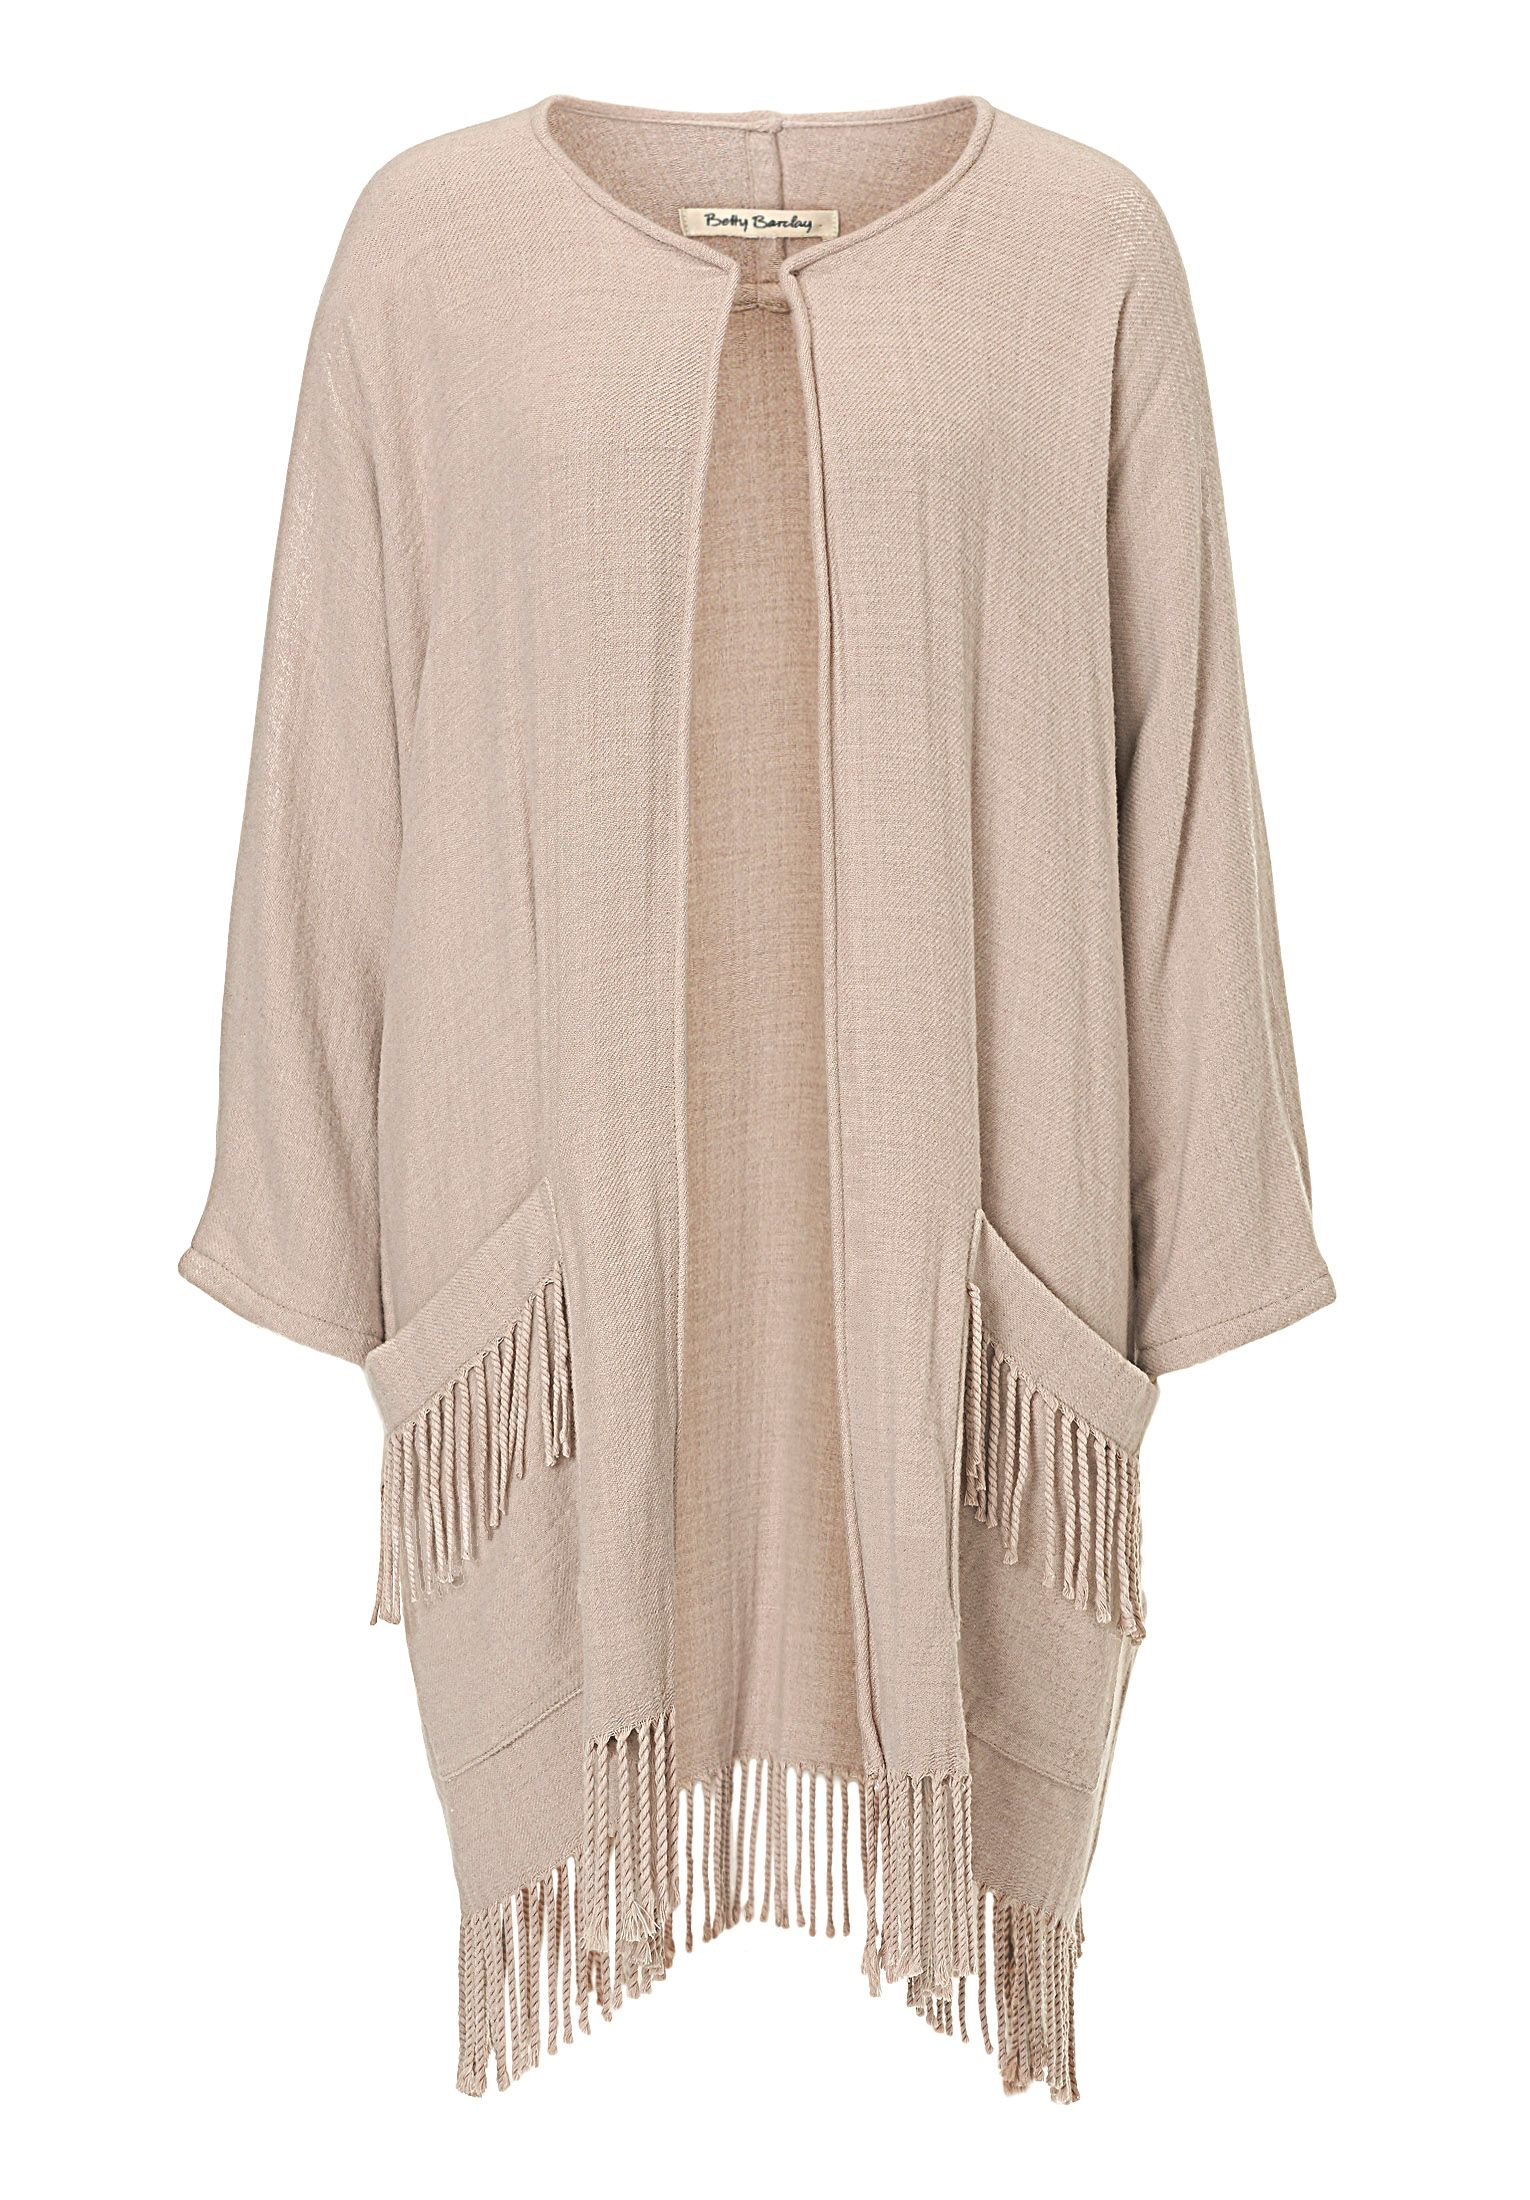 Betty Barclay Fringed blanket coat, White